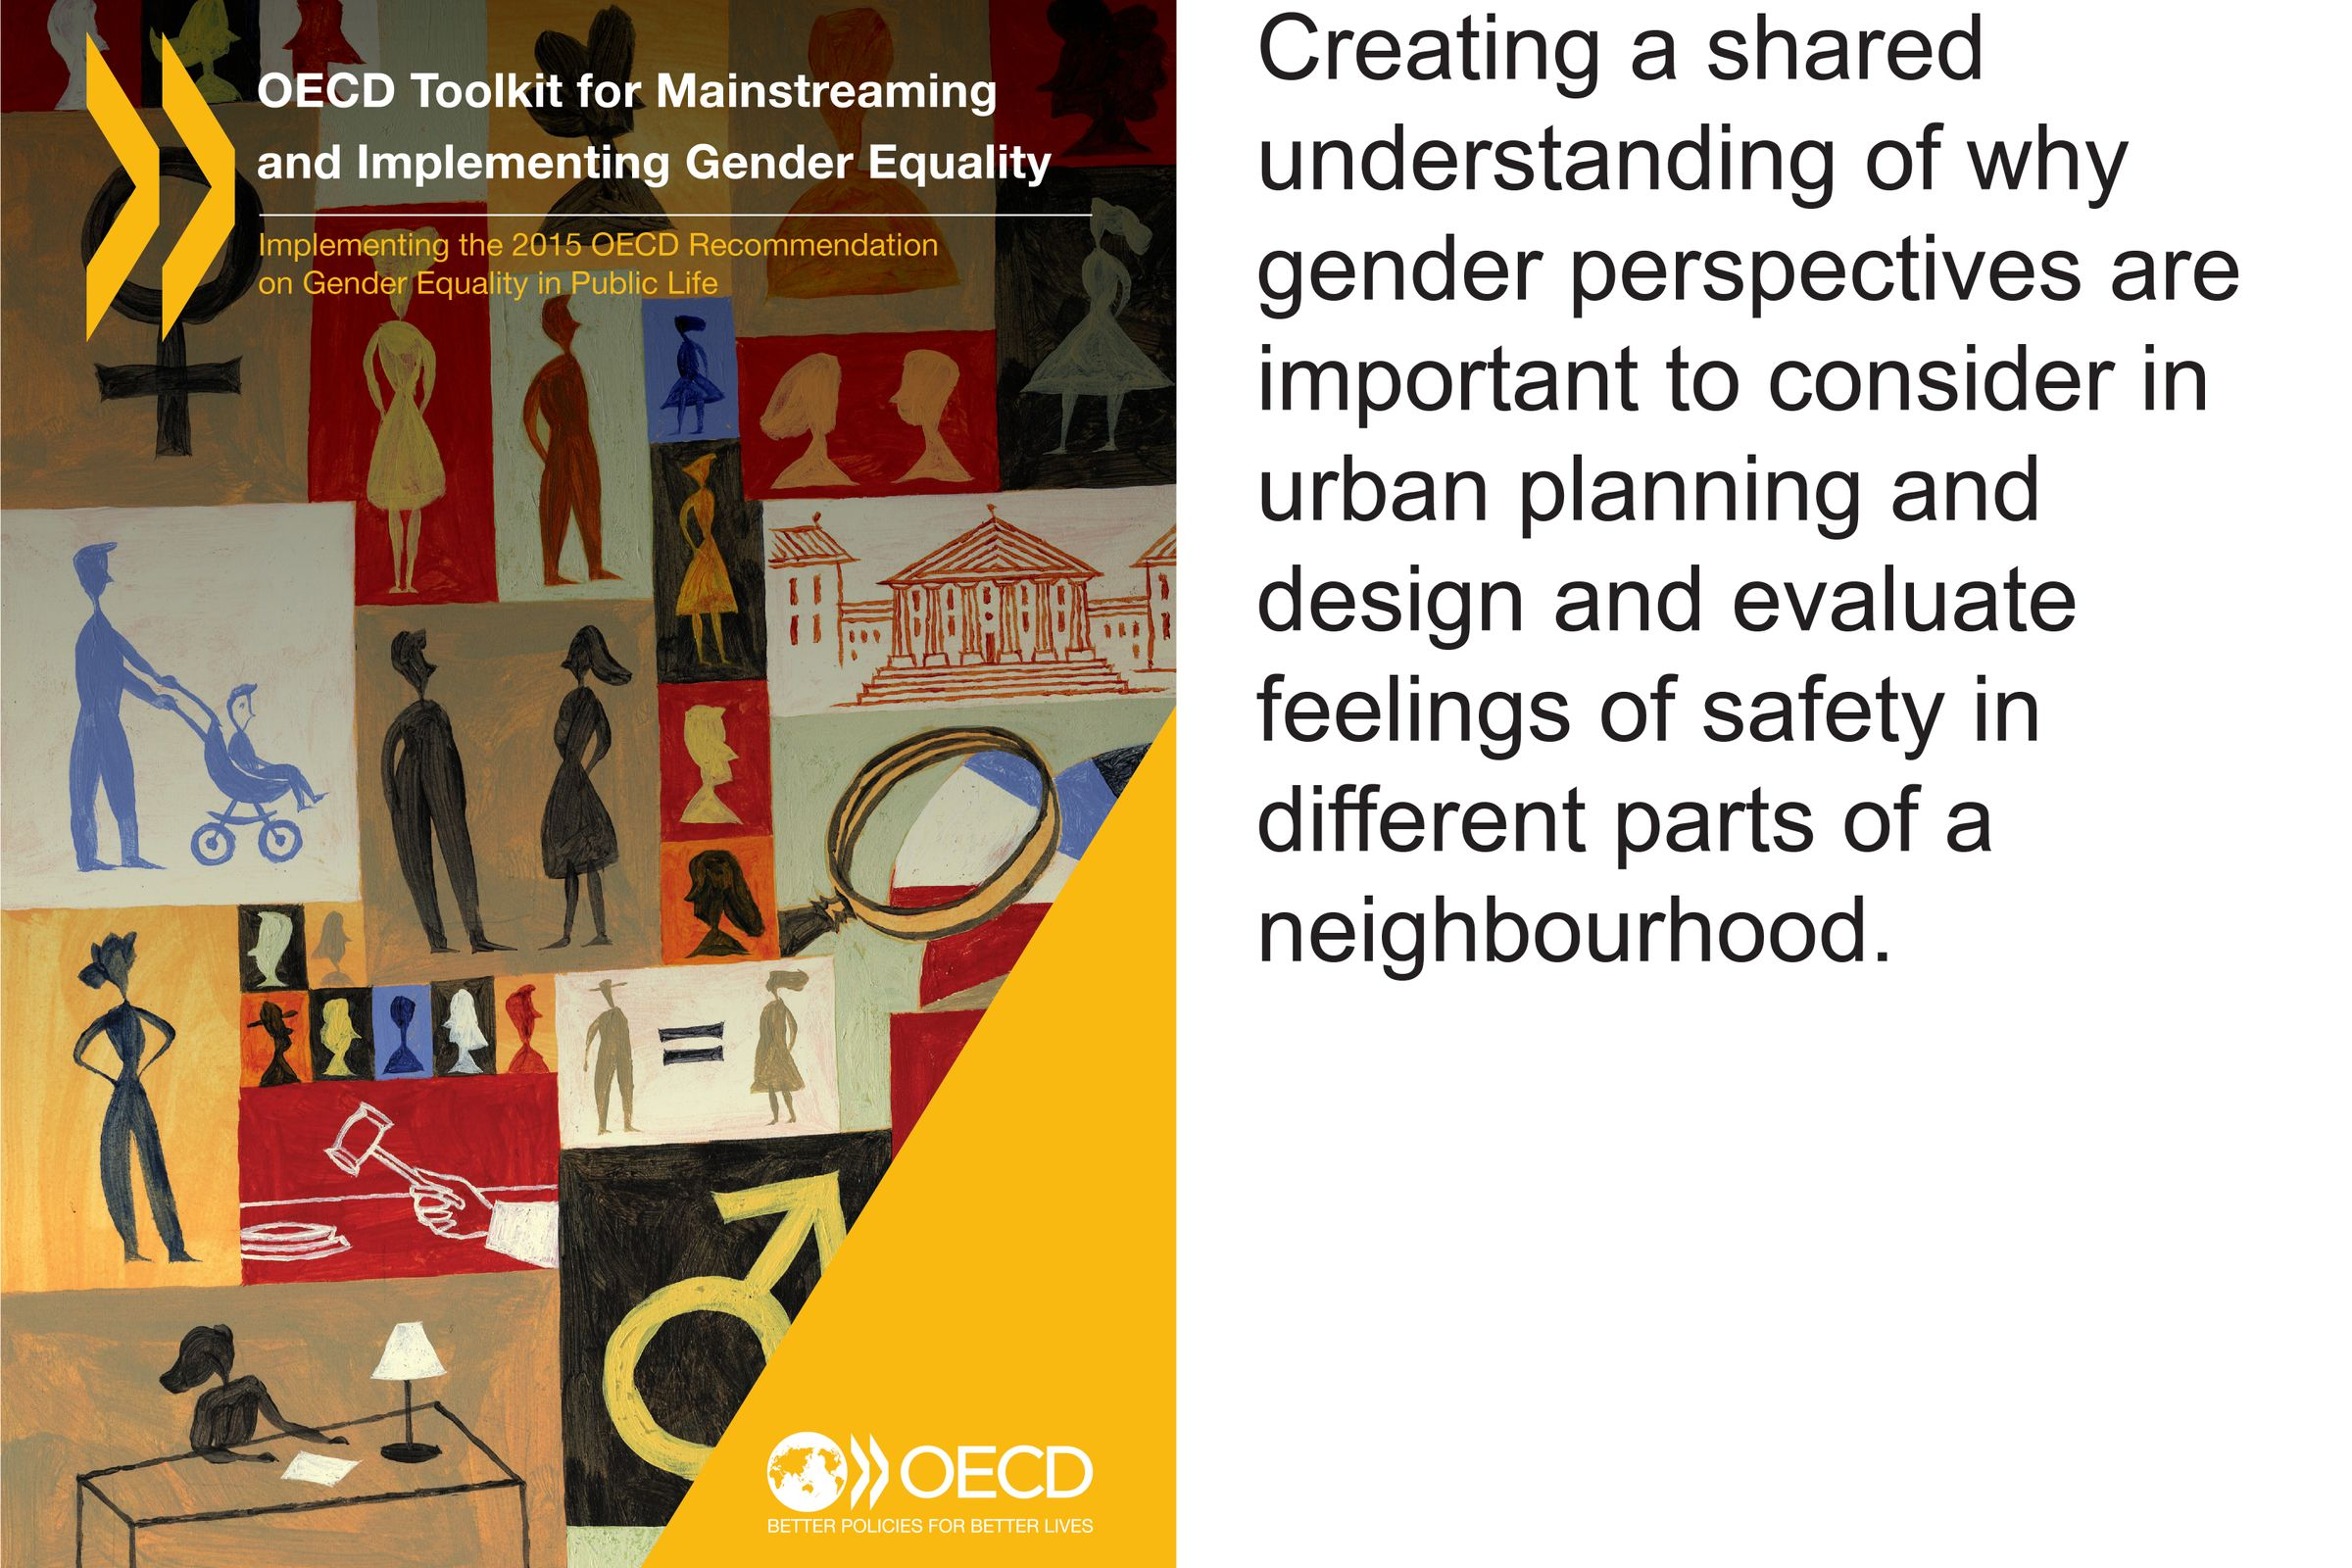 Promoting Buy In - creating a shared understanding of why gender perspectives are important to consider in urban planning and design and evaluate feelings of safety in different parts of a neighbourhood.